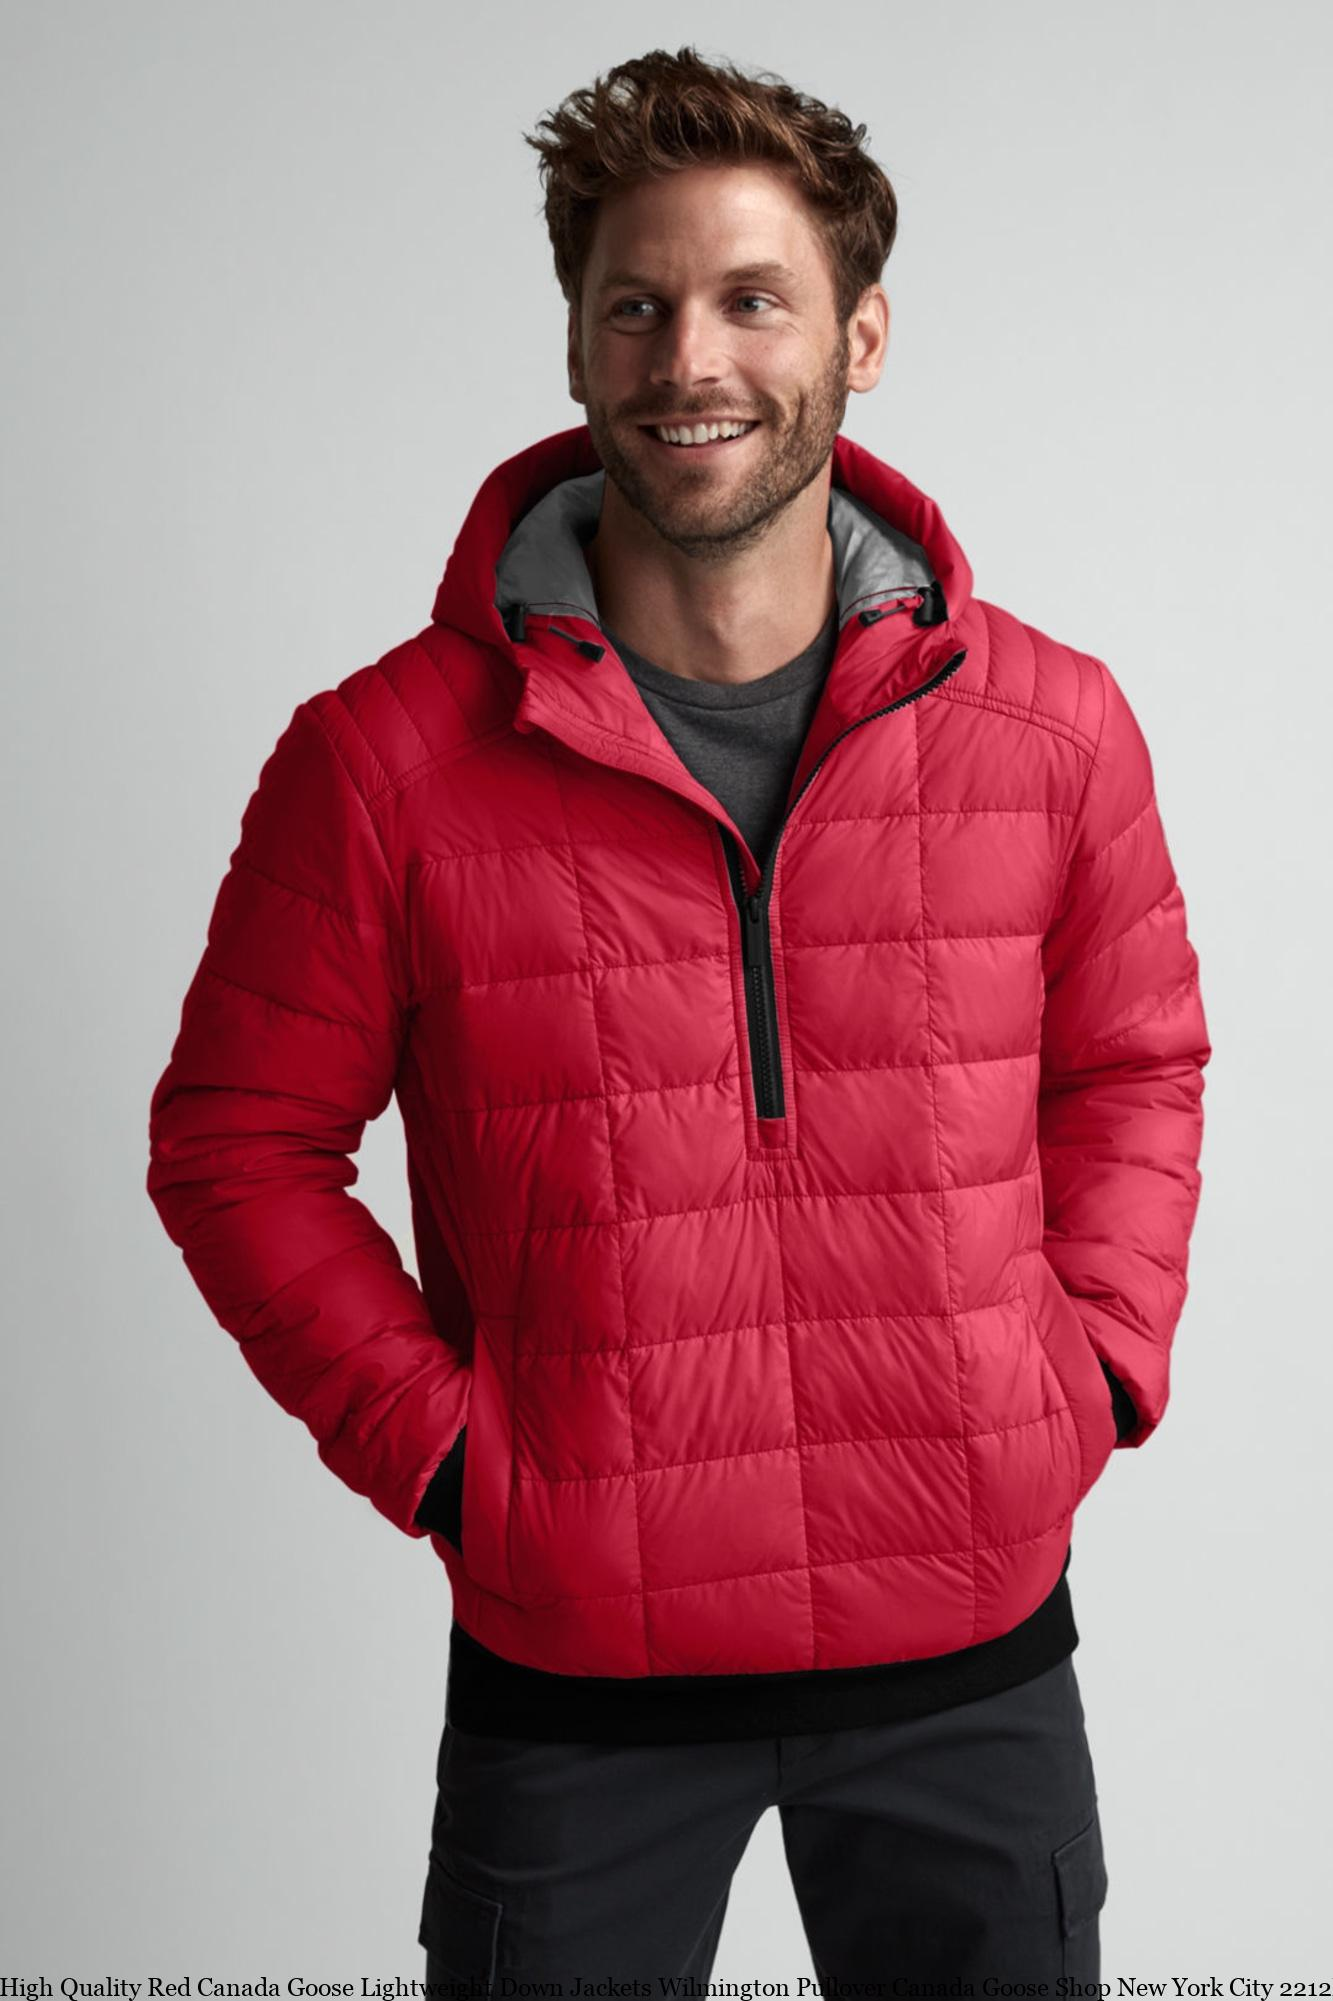 High Quality Red Canada Goose Lightweight Down Jackets Wilmington Pullover Canada  Goose Shop New York City 2212M – Canada Goose Clearance – Cheap Canada Goose  Jackets Outlet Online Sale